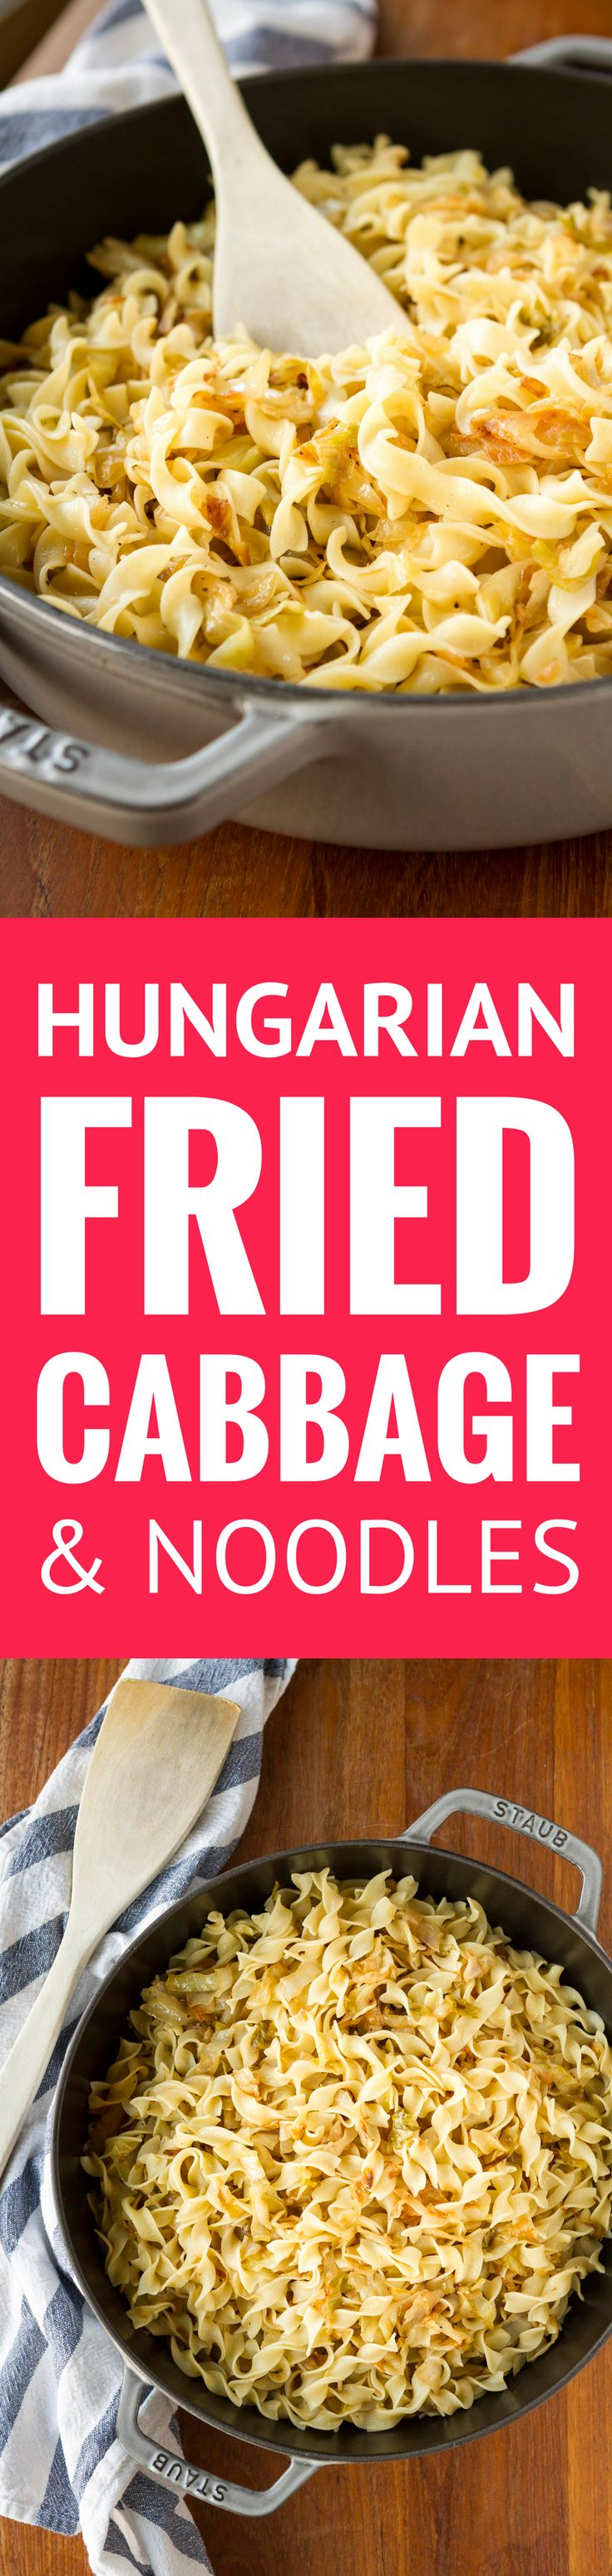 Fried Cabbage and Noodles -- an authentic Hungarian fried cabbage and noodles recipe passed down by my grandmother who emigrated from Austria-Hungary… Also known as Haluska, Krautfleckerl, or Káposztás Tészta, this simple buttery caramelized cabbage recipe packs a lot of flavor for VERY little money! | hungarian recipes | easy recipes | haluski | comfort food recipes | frugal recipes | find the recipe on unsophisticook.com #hungarianrecipes #cabbagerecipes #maindish #dinnerrecipes #noodles